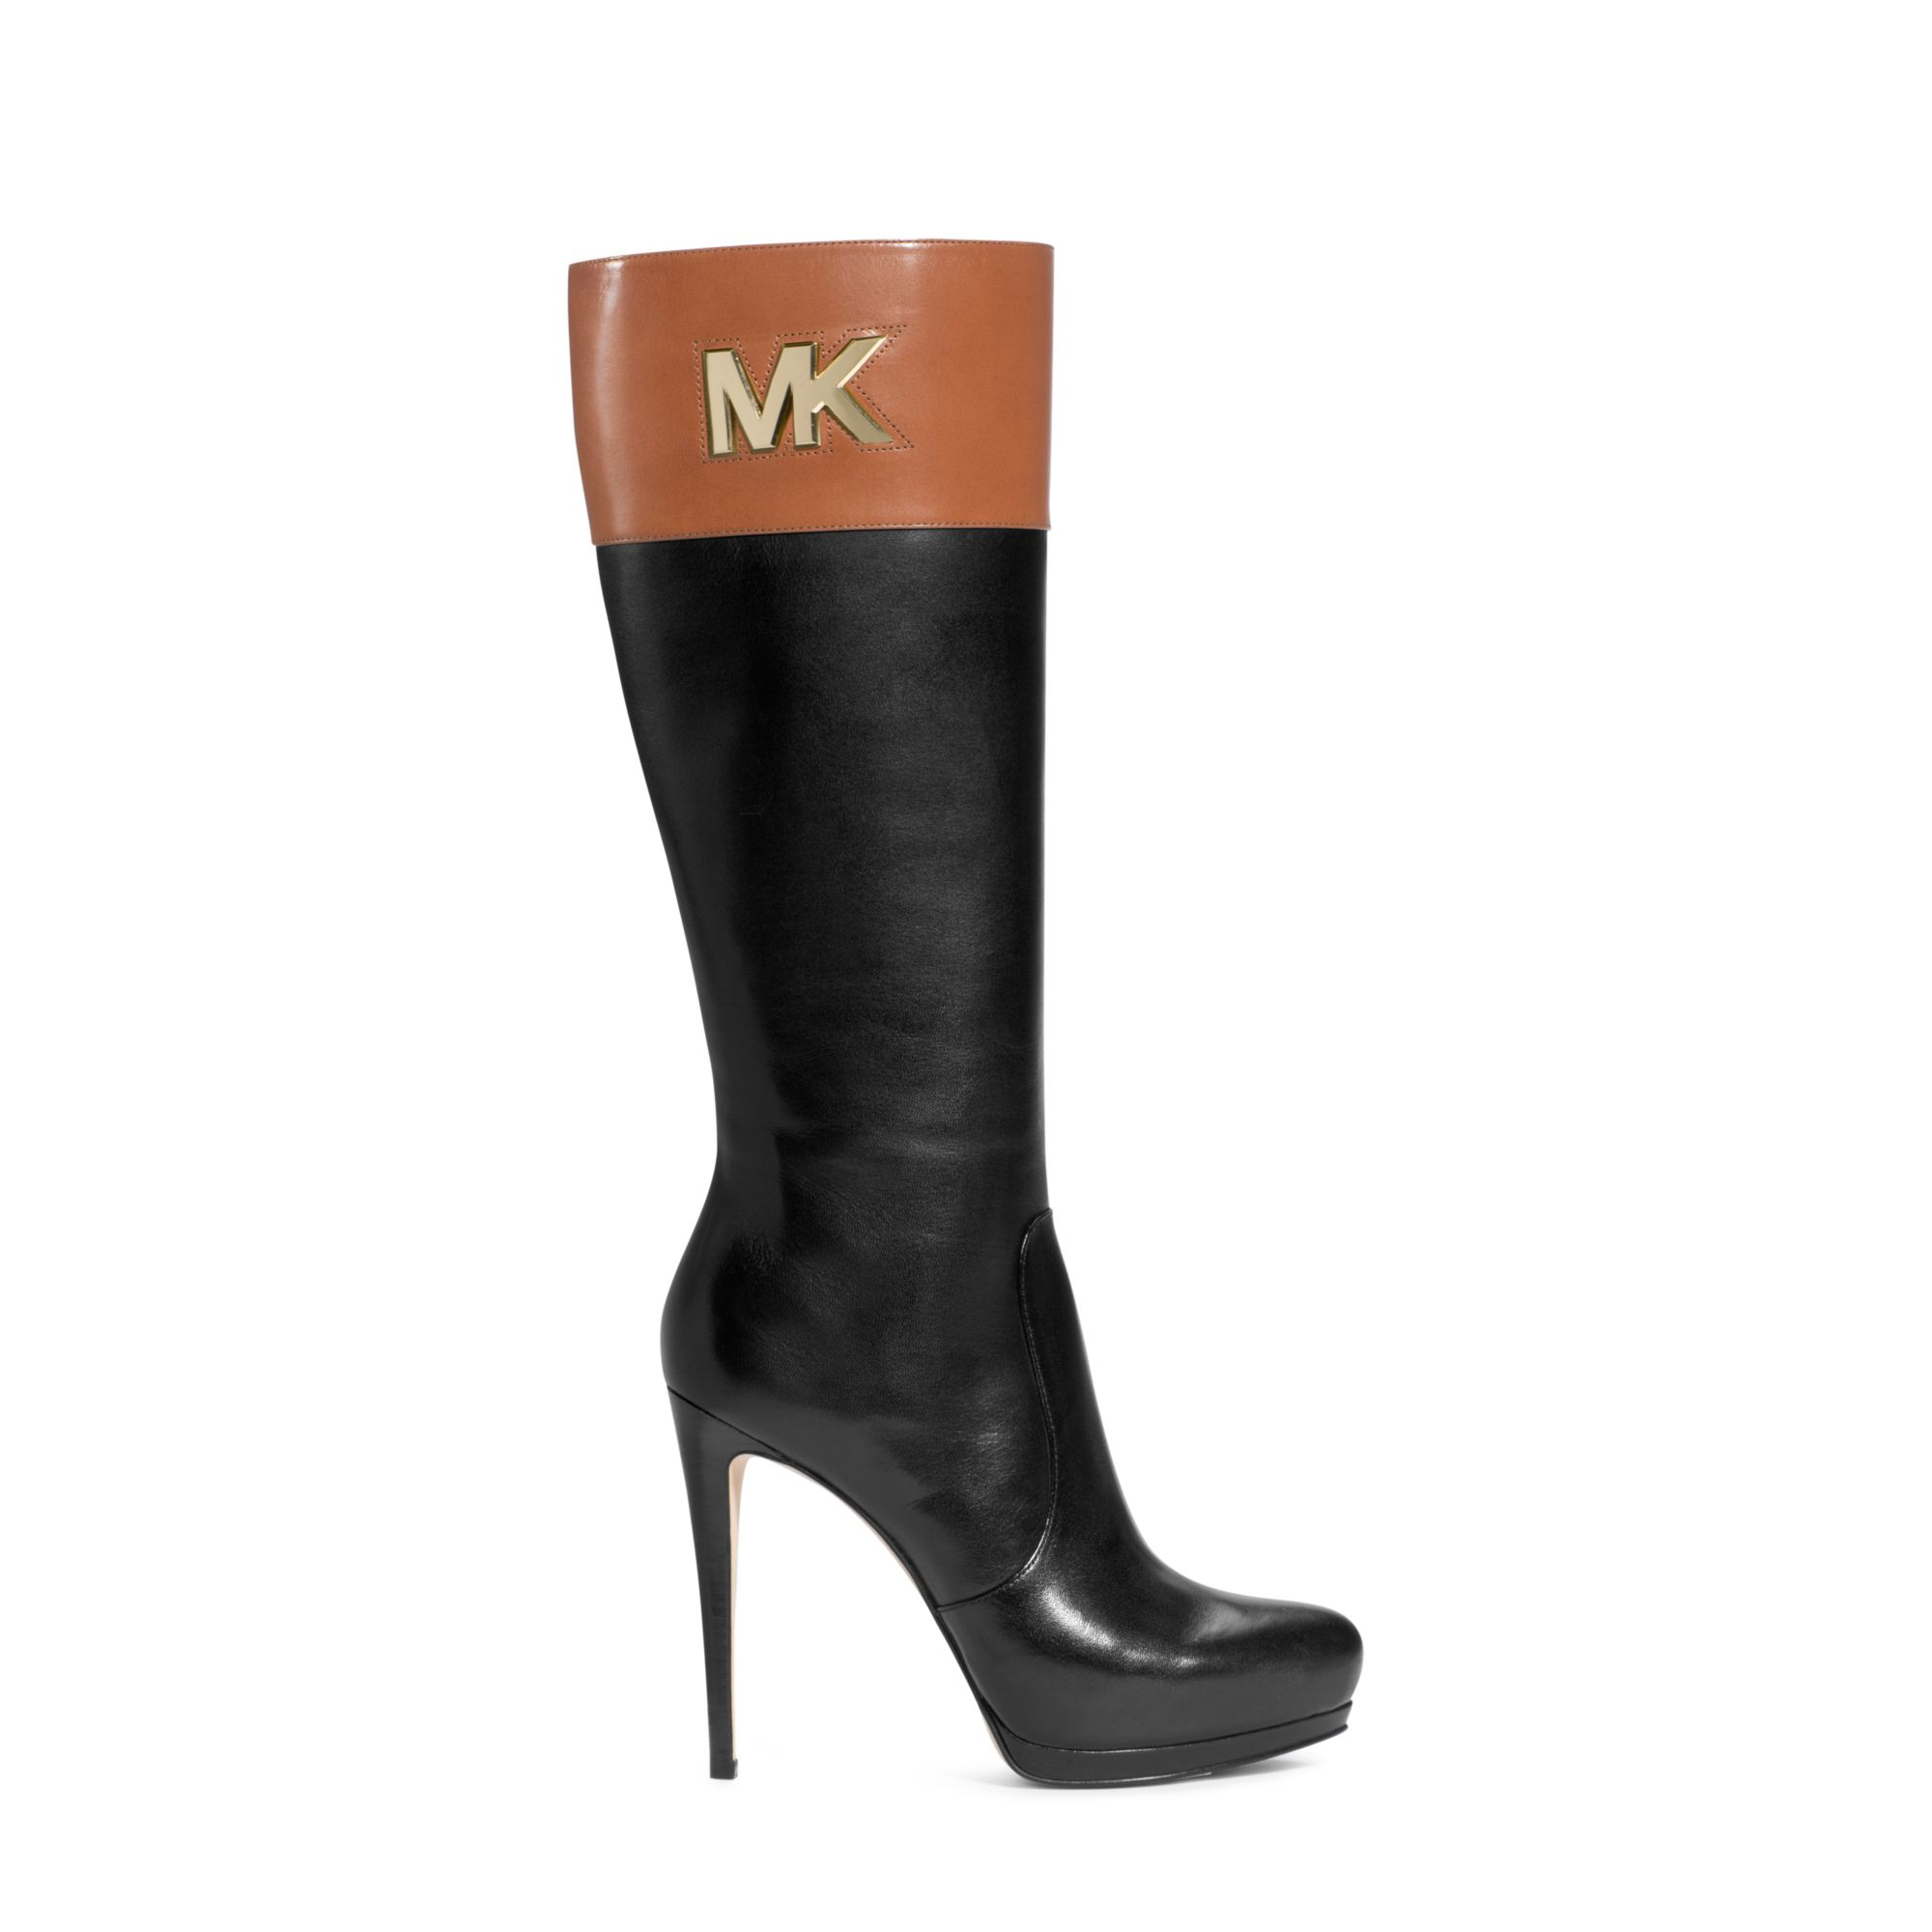 7e21bfb04ce4 Lyst - Michael Kors Hayley Boot in Black